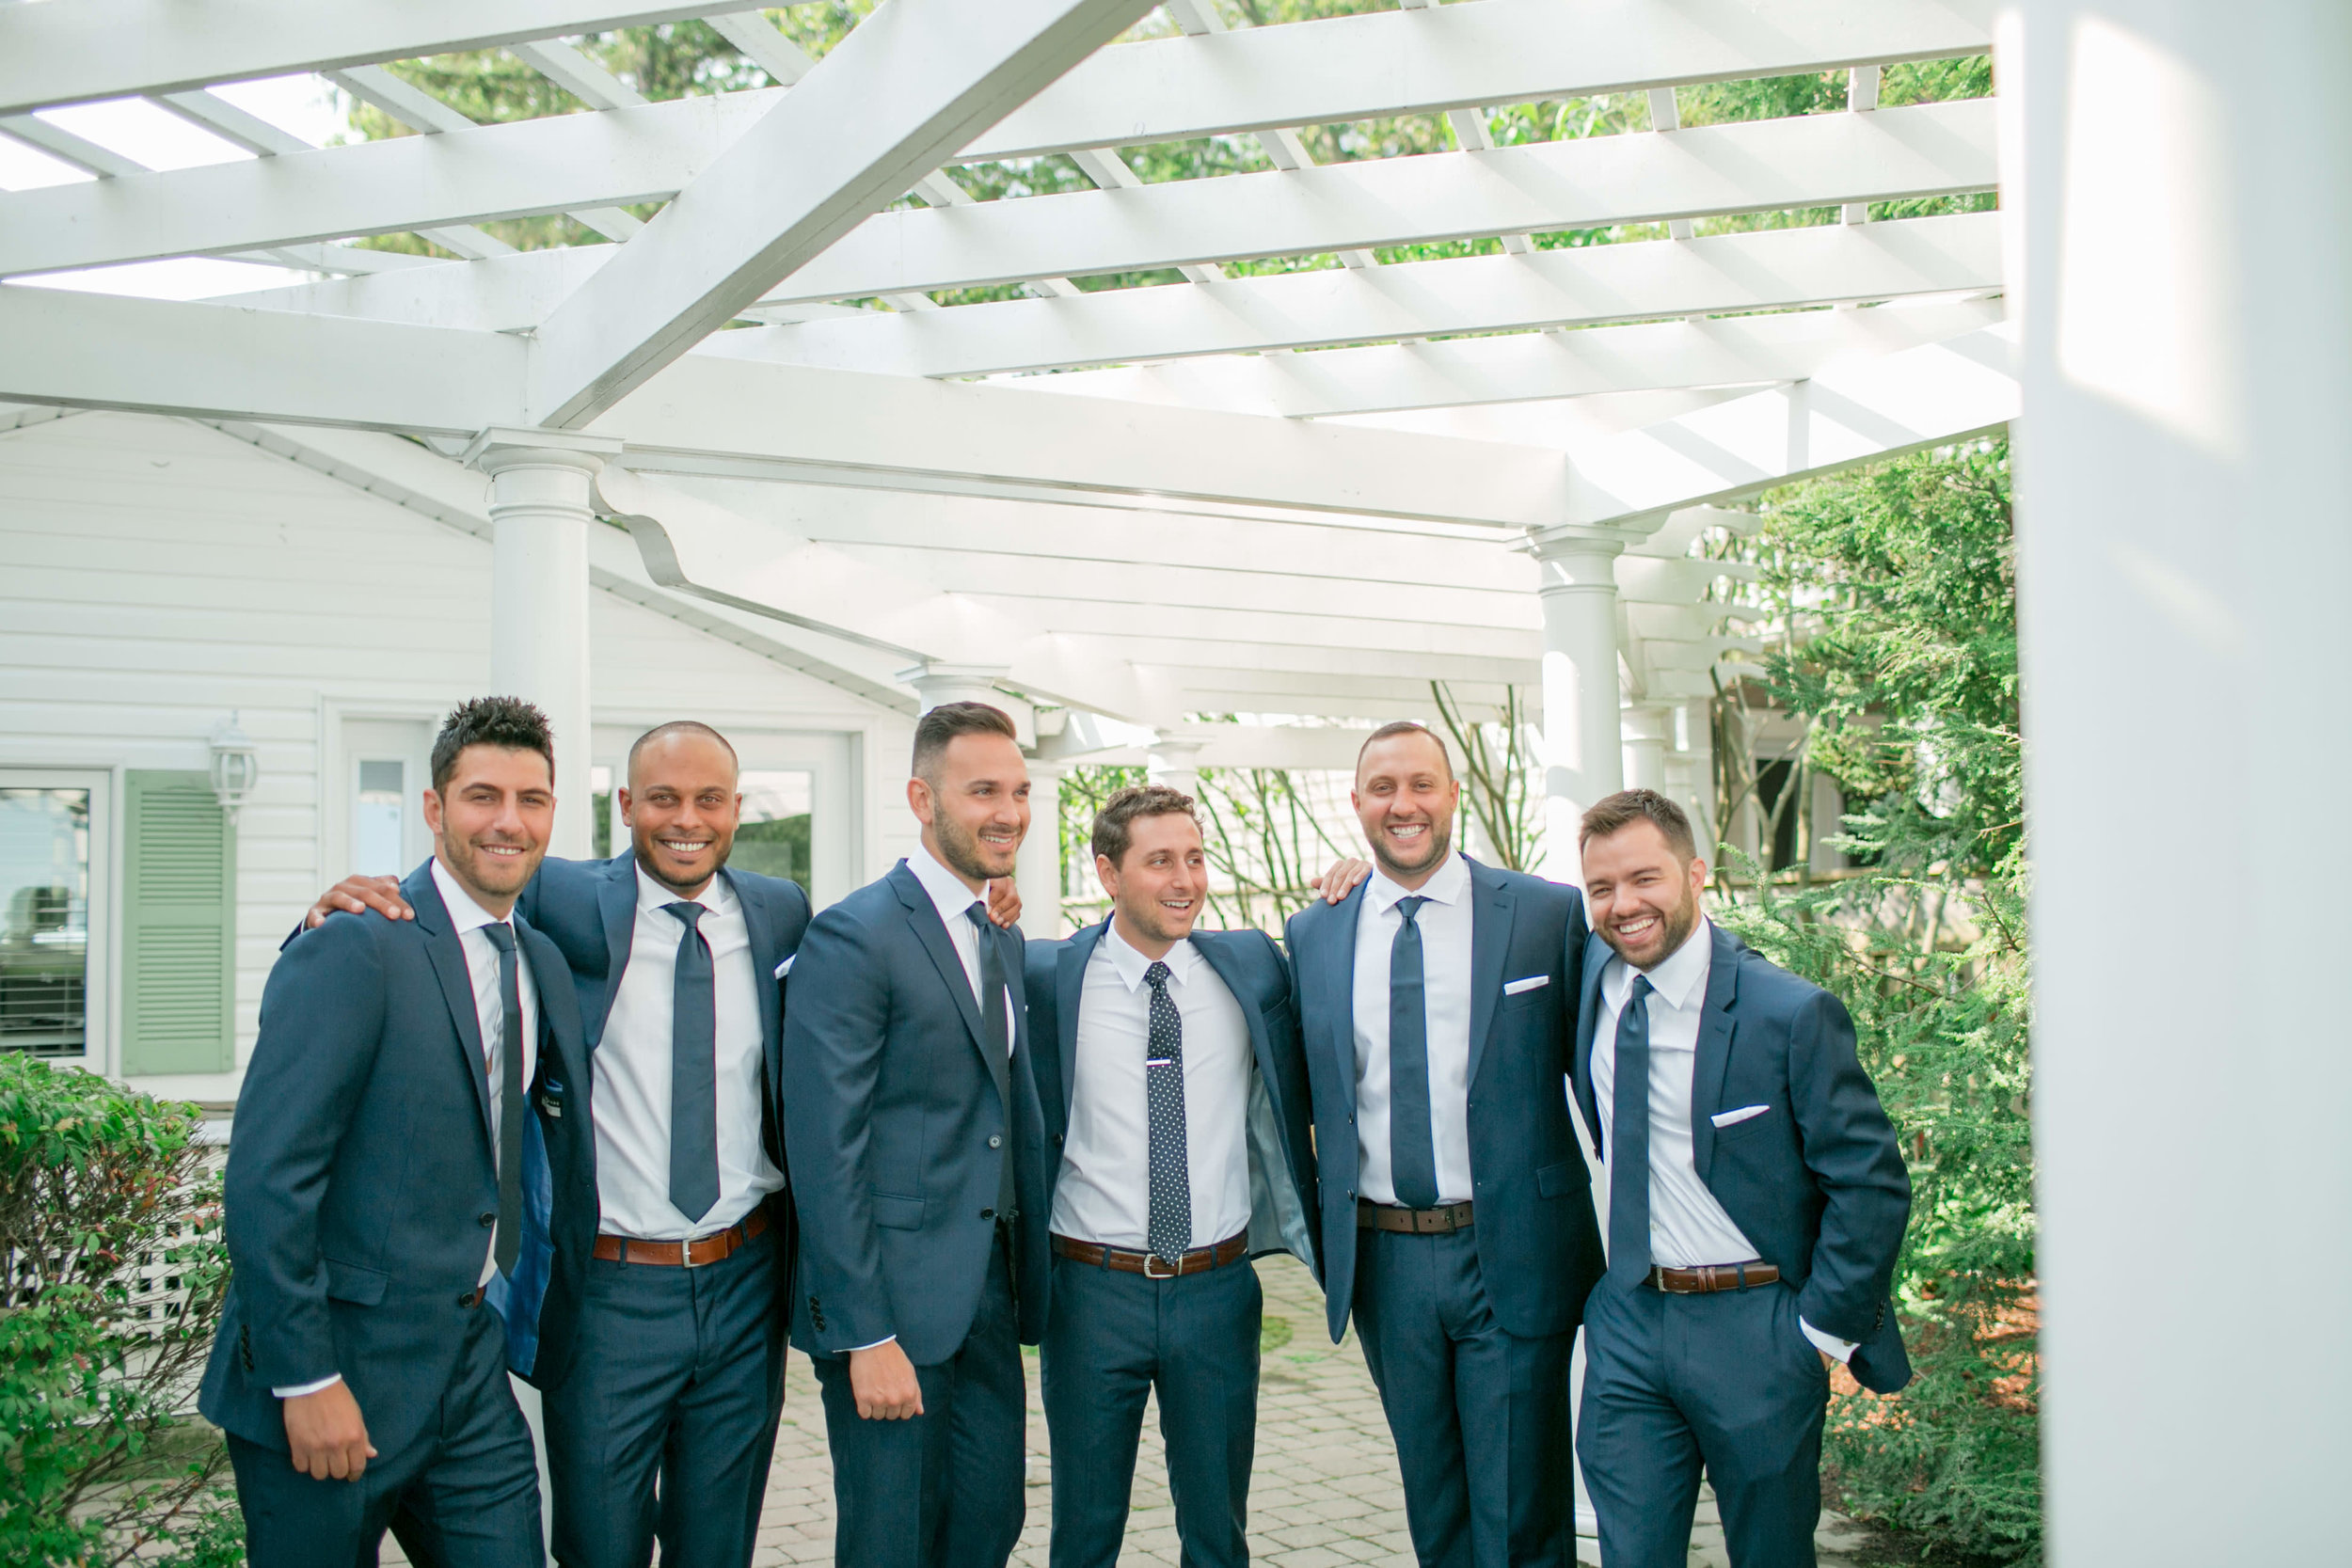 Sabrina___Jonathan_Wedding___High_Res._Finals_Daniel_Ricci_Weddings_33.jpg